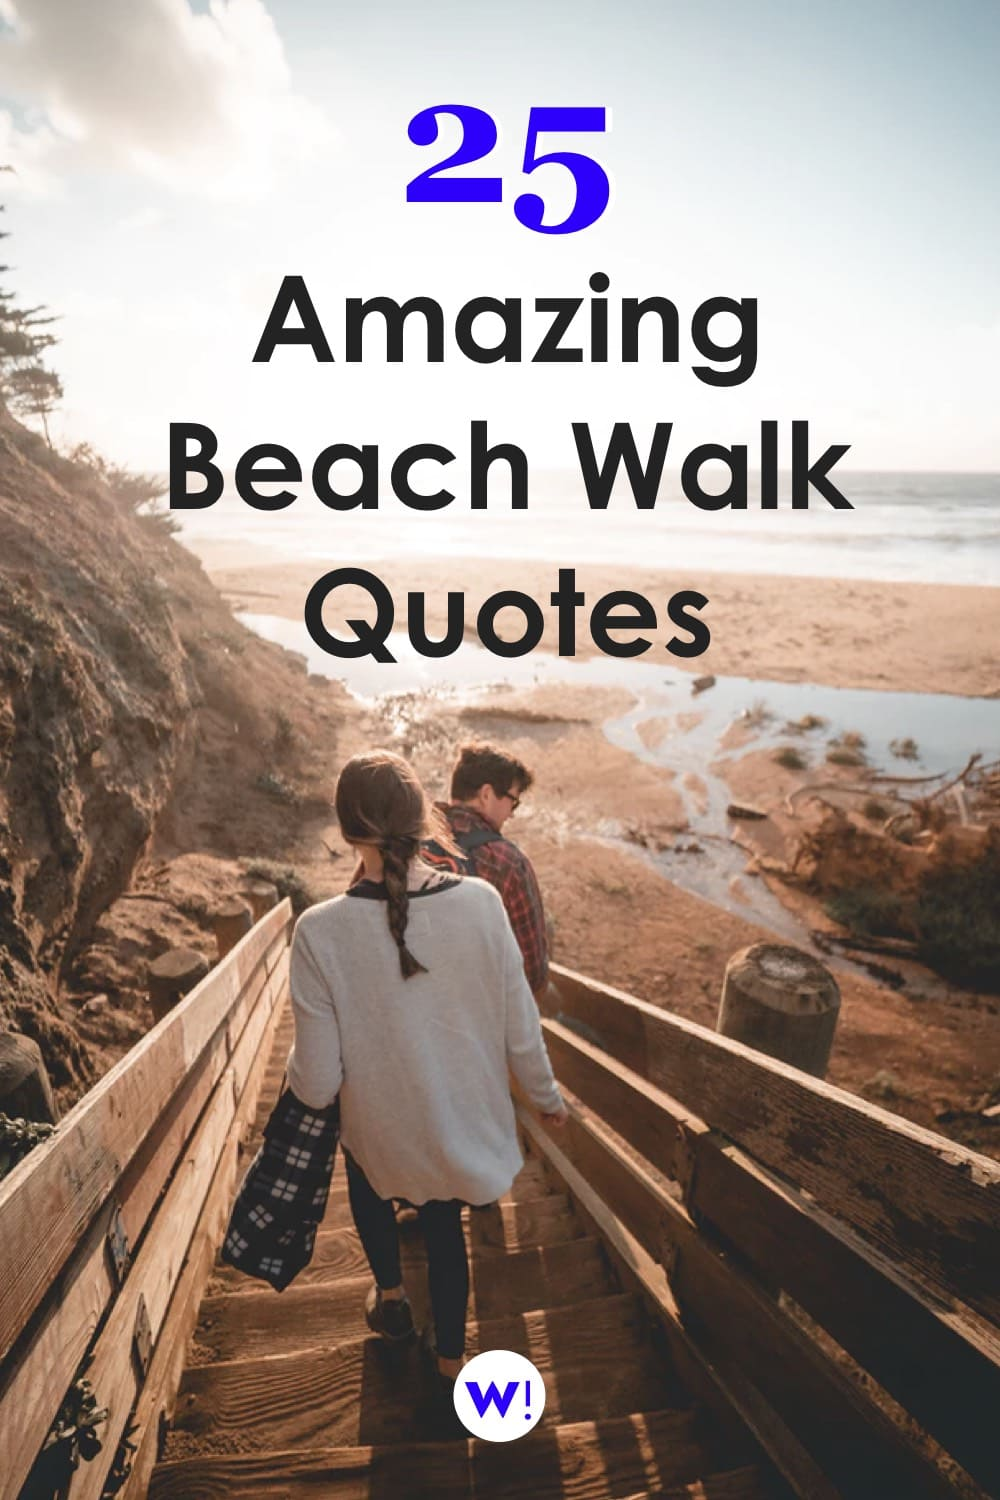 Looking for great beach walk quotes? Quotes specifically related to walking on the beach? That's exactly what you'll find here! beach walk quotes feelings |walk on the beach quotes |sea walking quotes | walking by the sea quotes |beach captions for instagram |take me to the beach quotes | going to the beach quotes | beach sayings and quotes